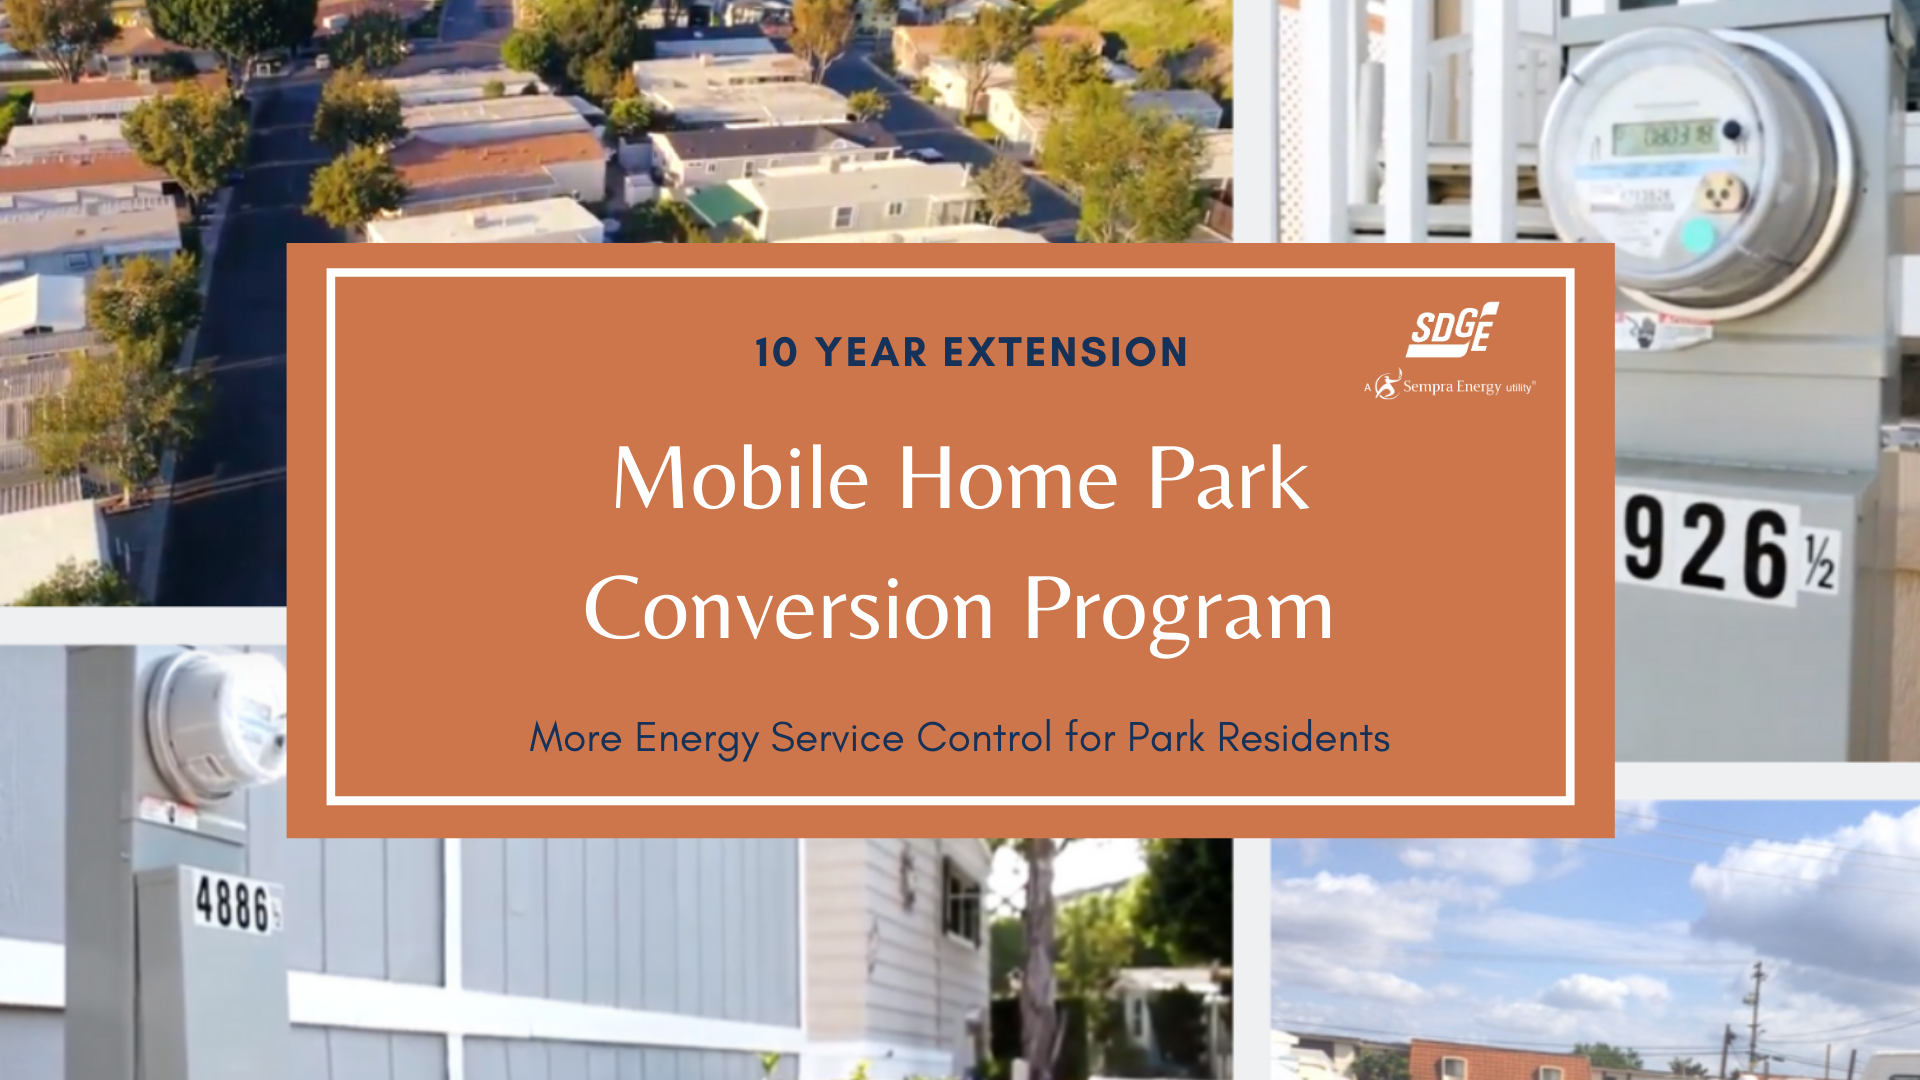 SDG&E's Mobile Home Conversion Program Extended to Continue Providing Park Residents More Control of their Energy Service